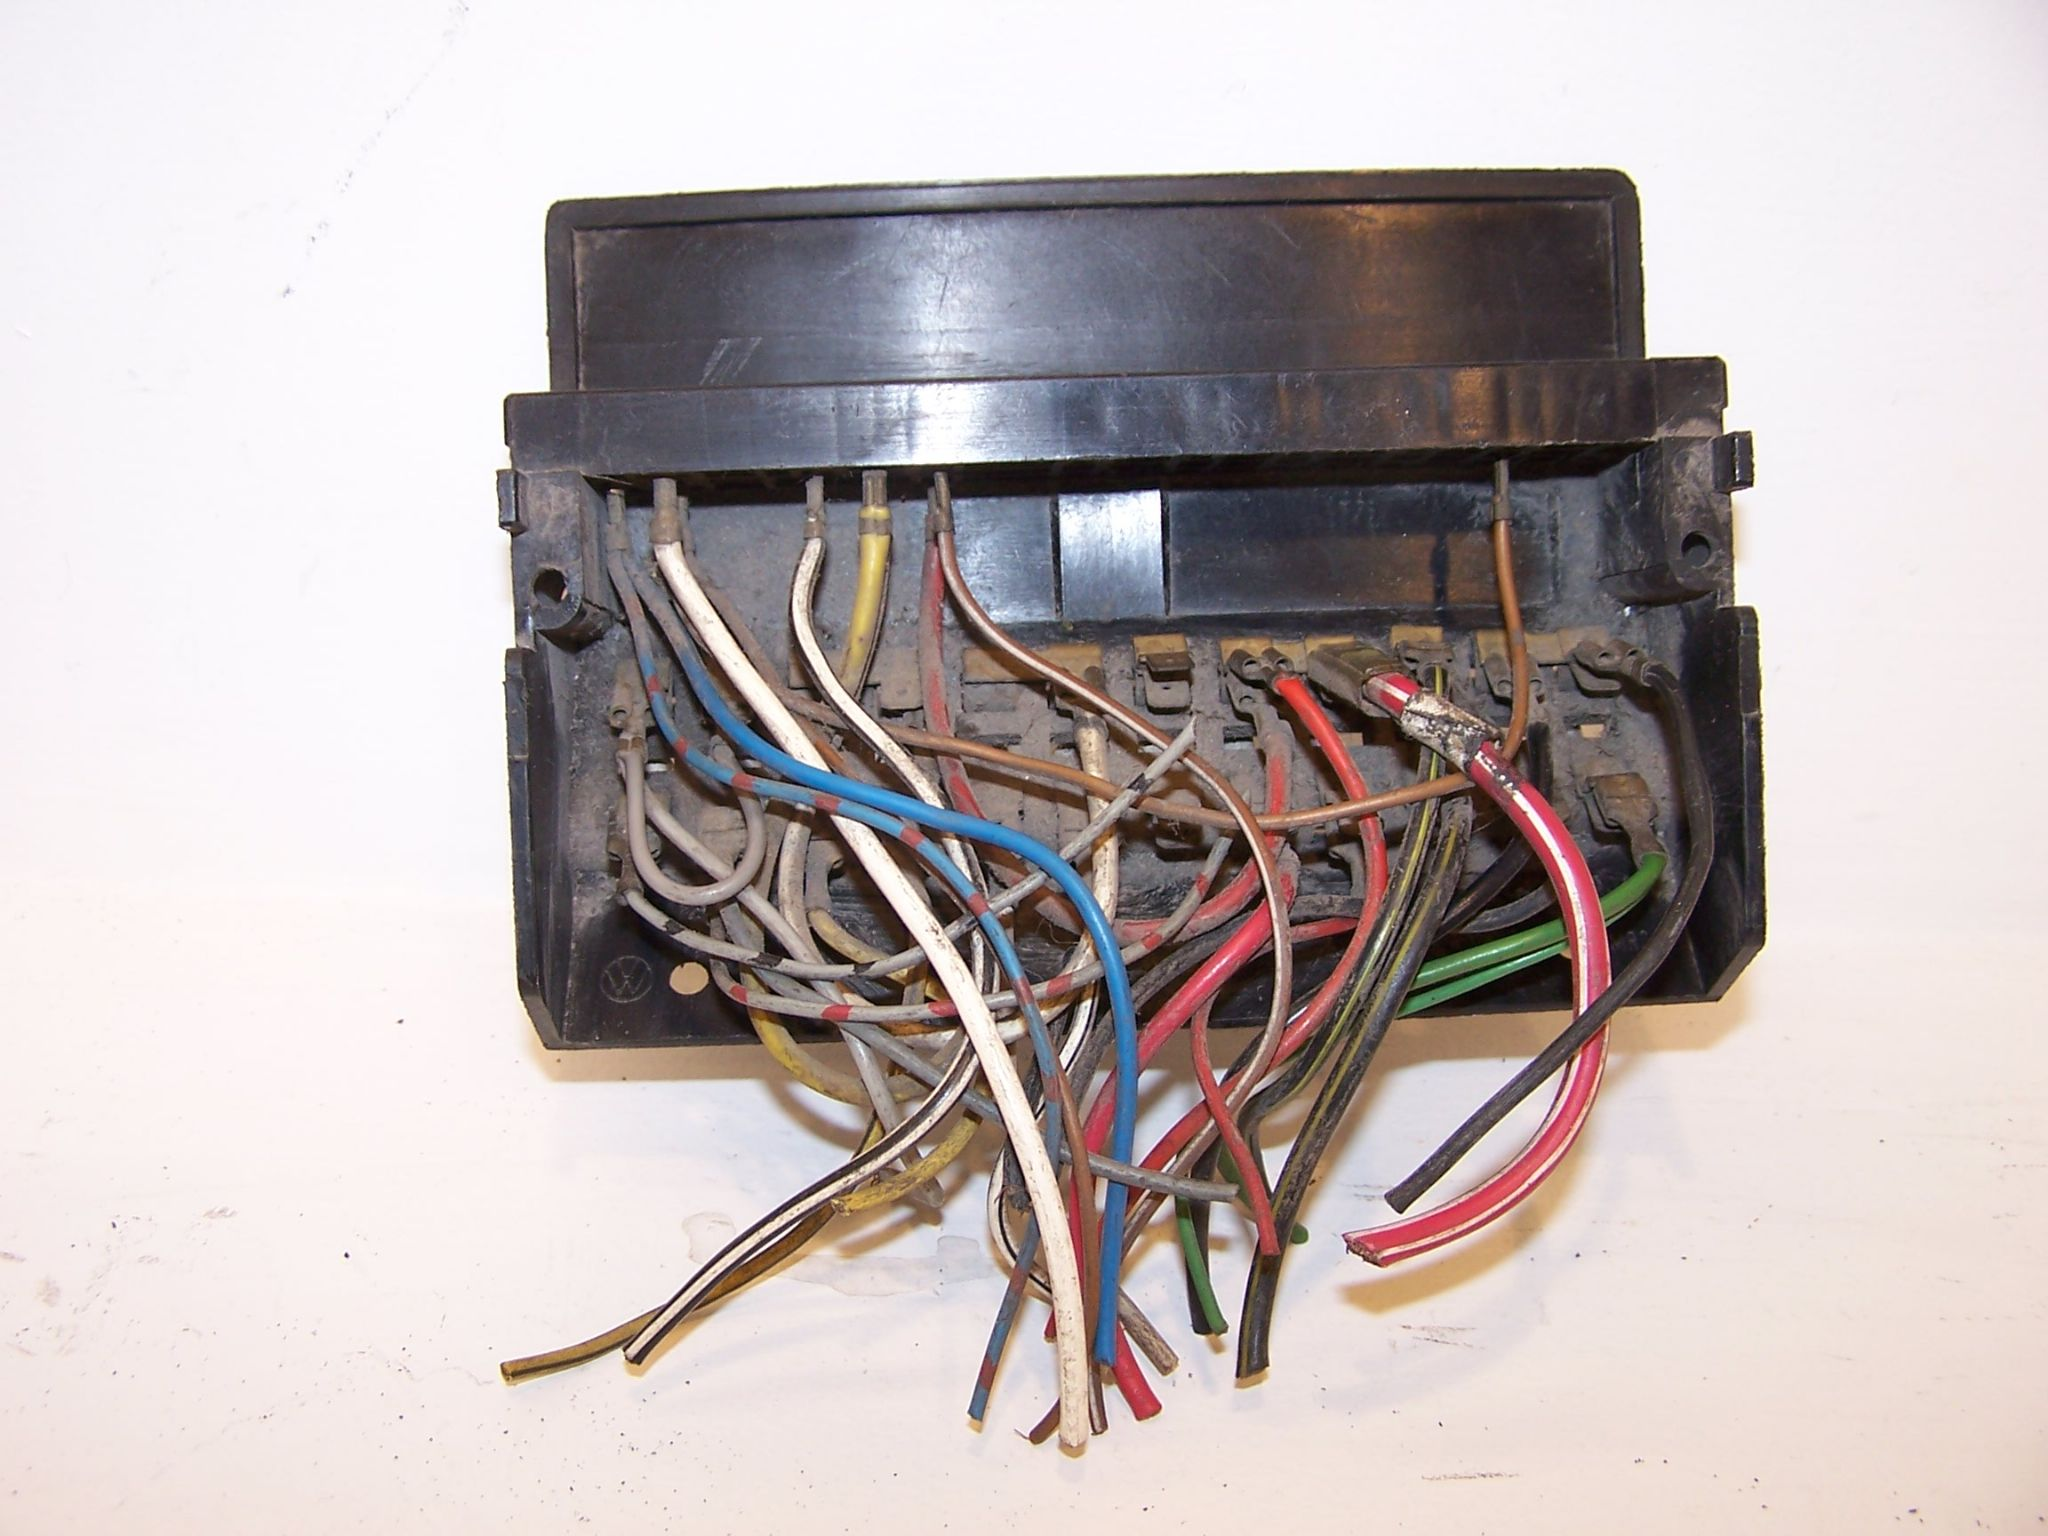 Fuse Box In Vw Beetle Free Wiring Diagram For You 1974 1303 Type 2 1979 2013 2000